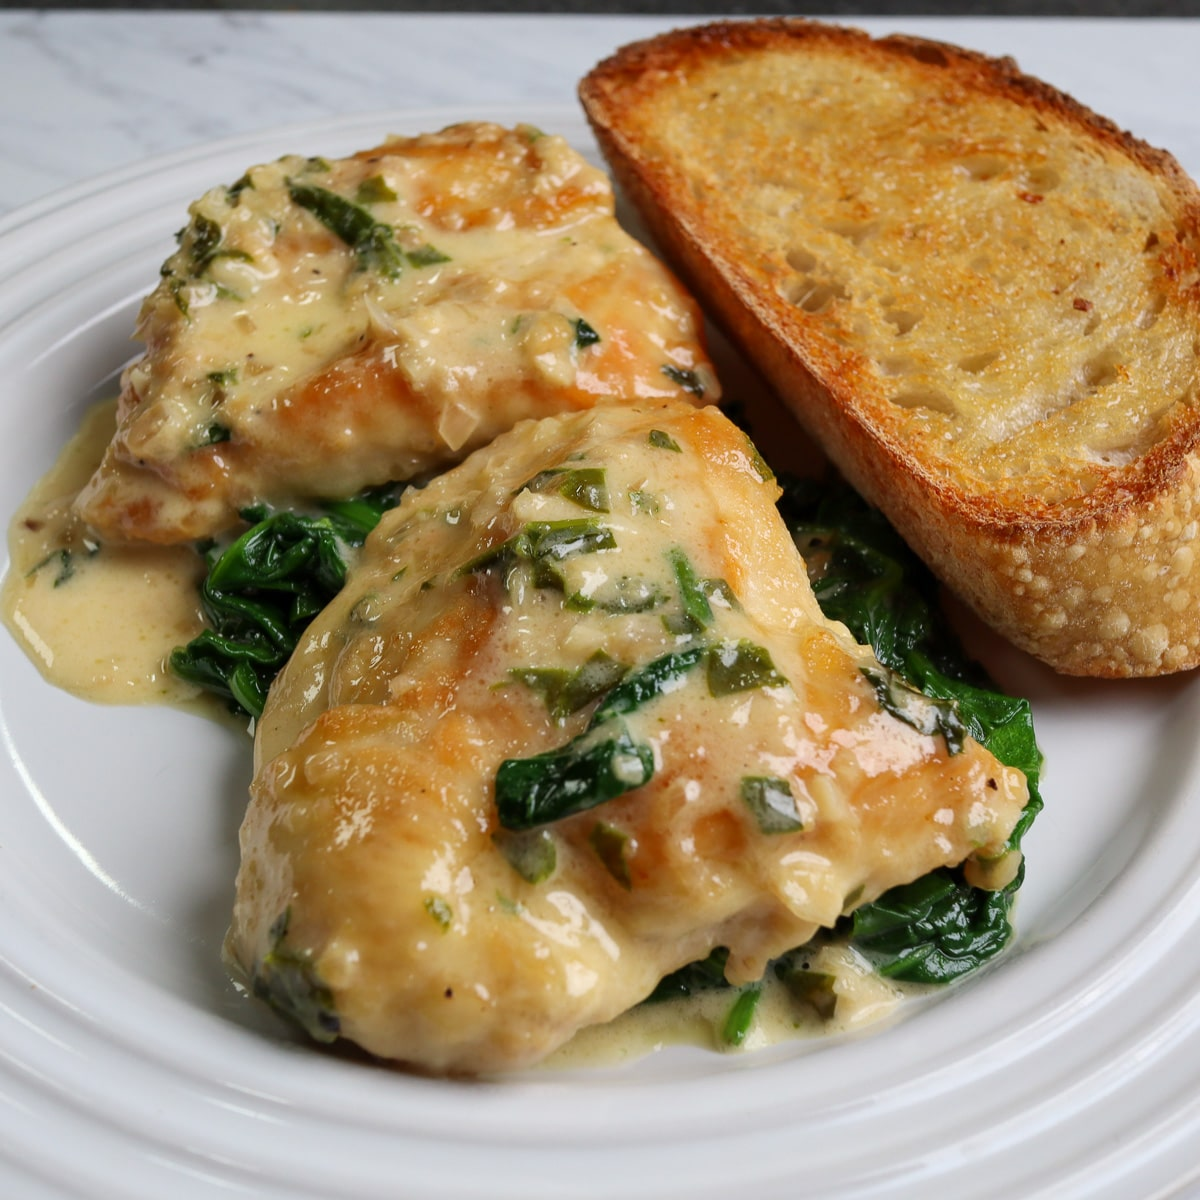 the final chicken florentine dish ready to be eaten on a white plate